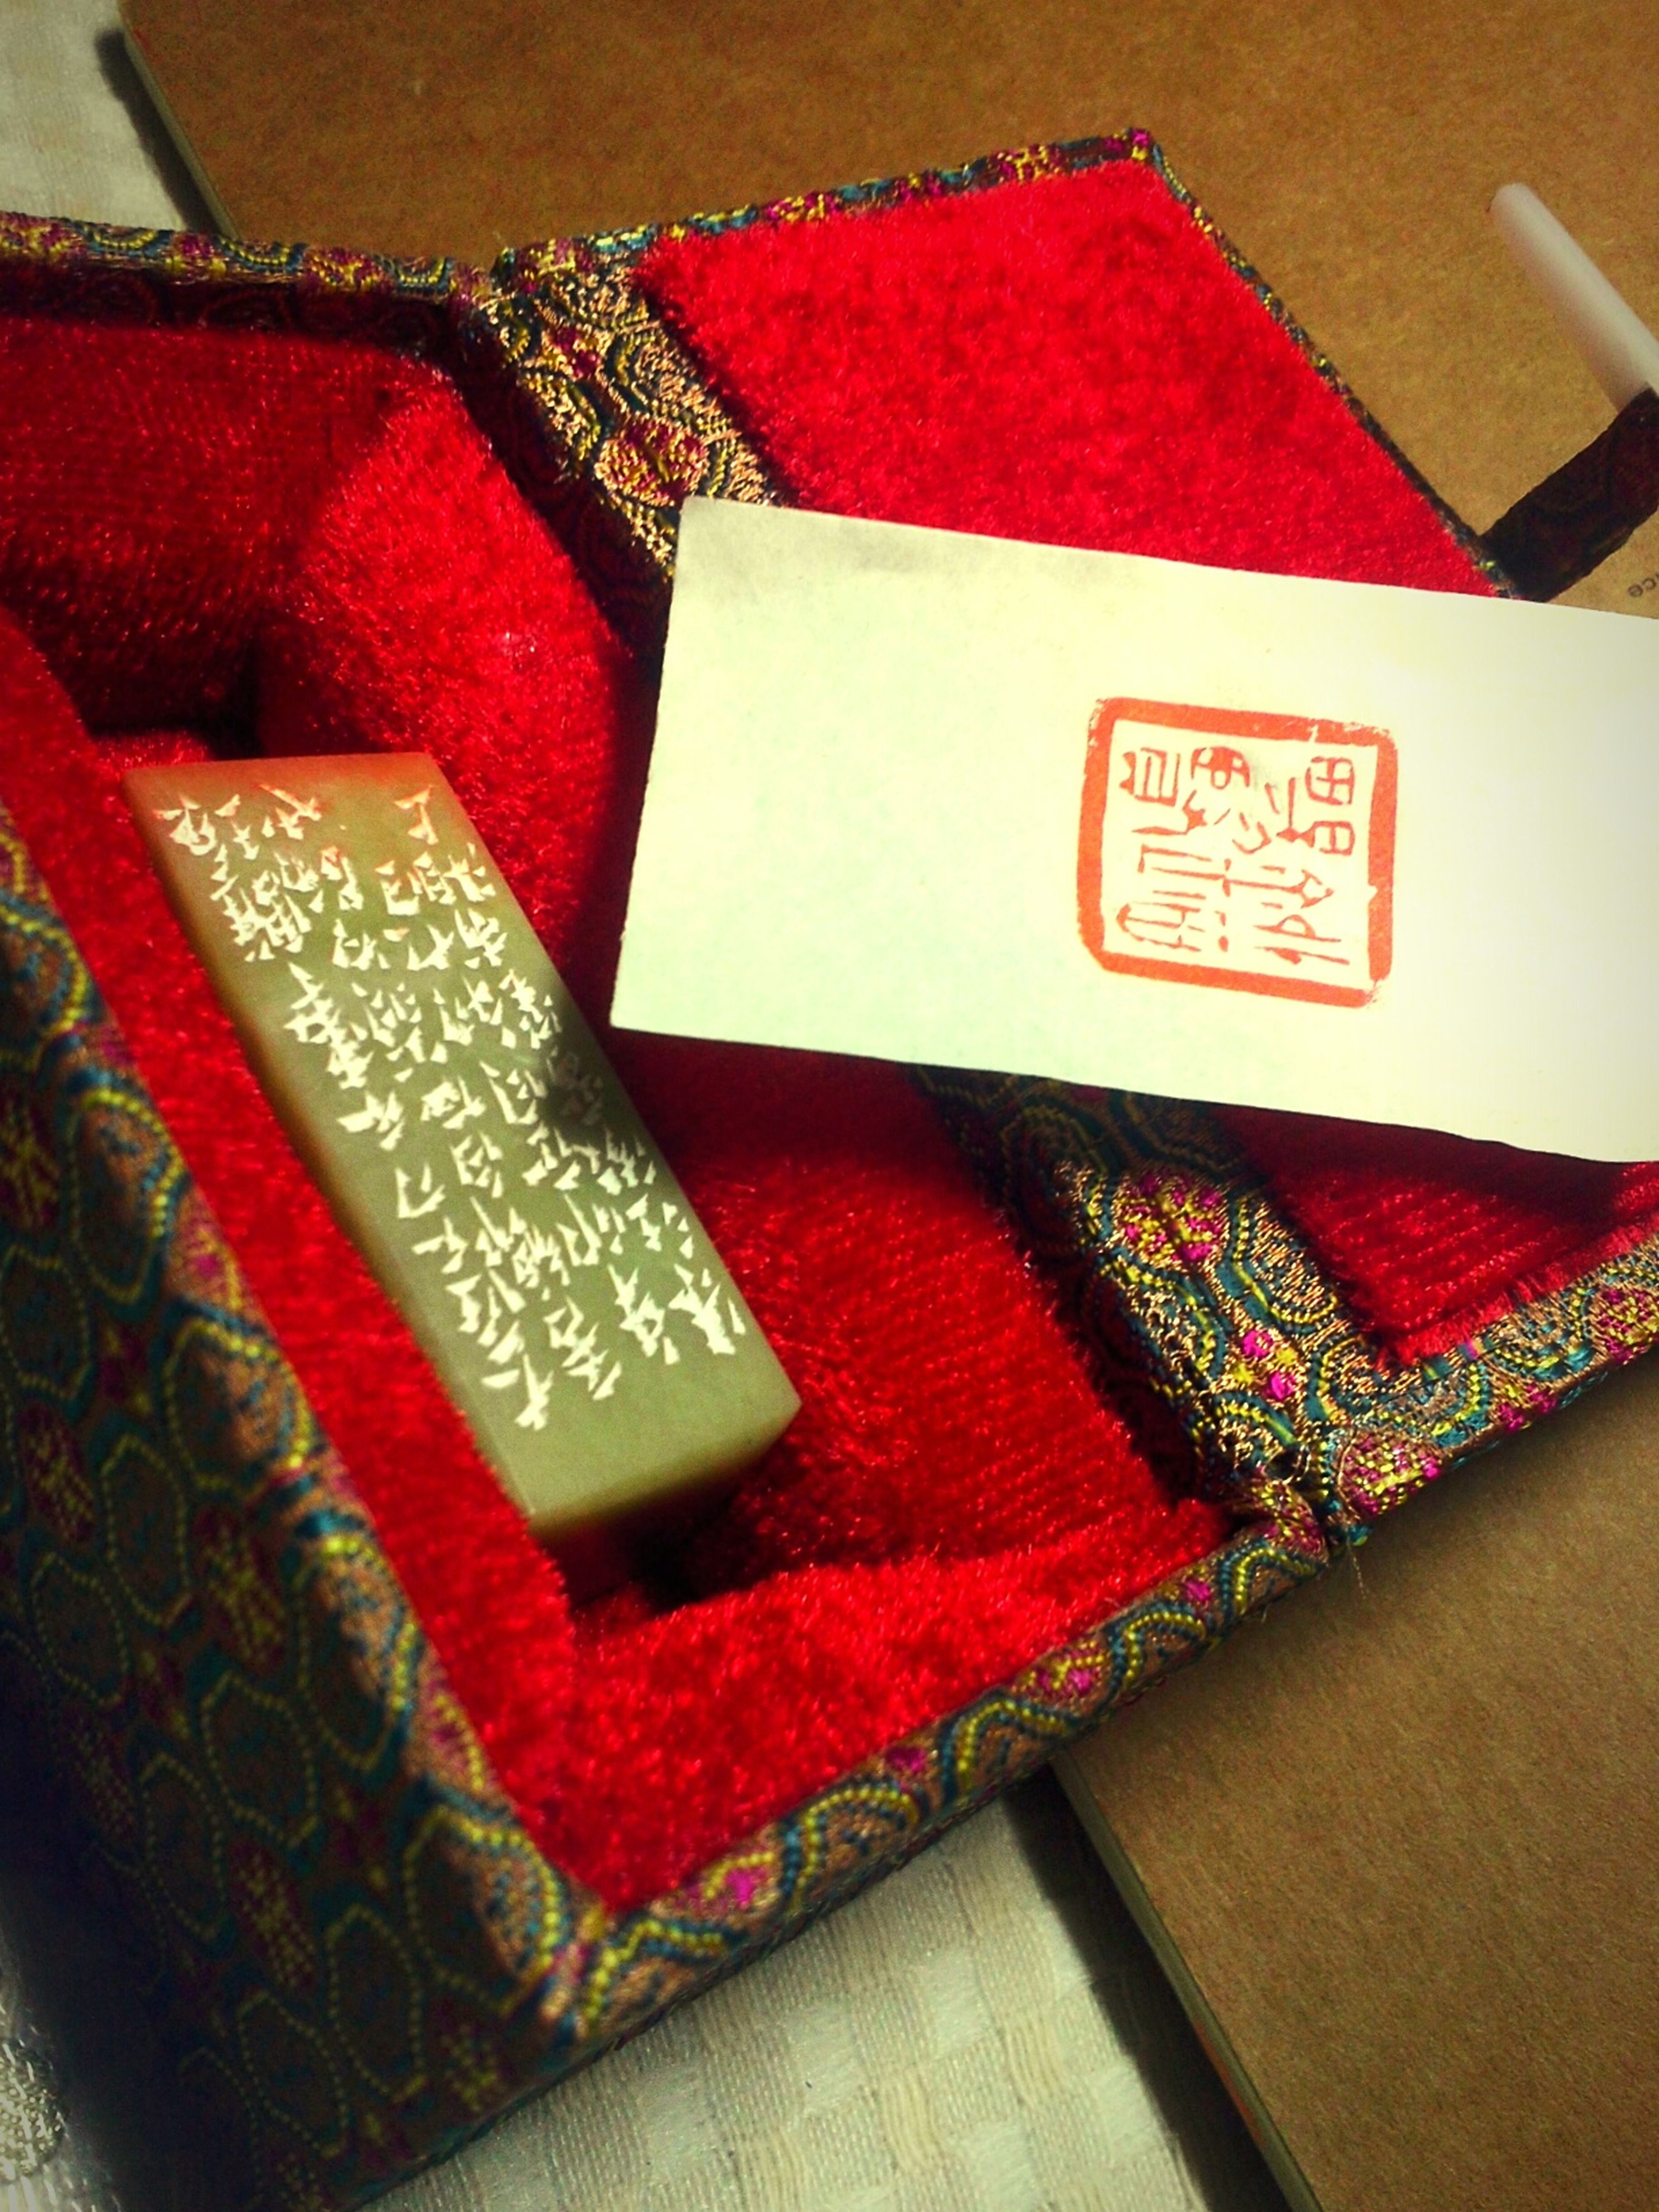 Hand-made sael. My name on it!!Red Day Gift Indoors  High Angle View No People Close-up Envelope Chinese Troditional